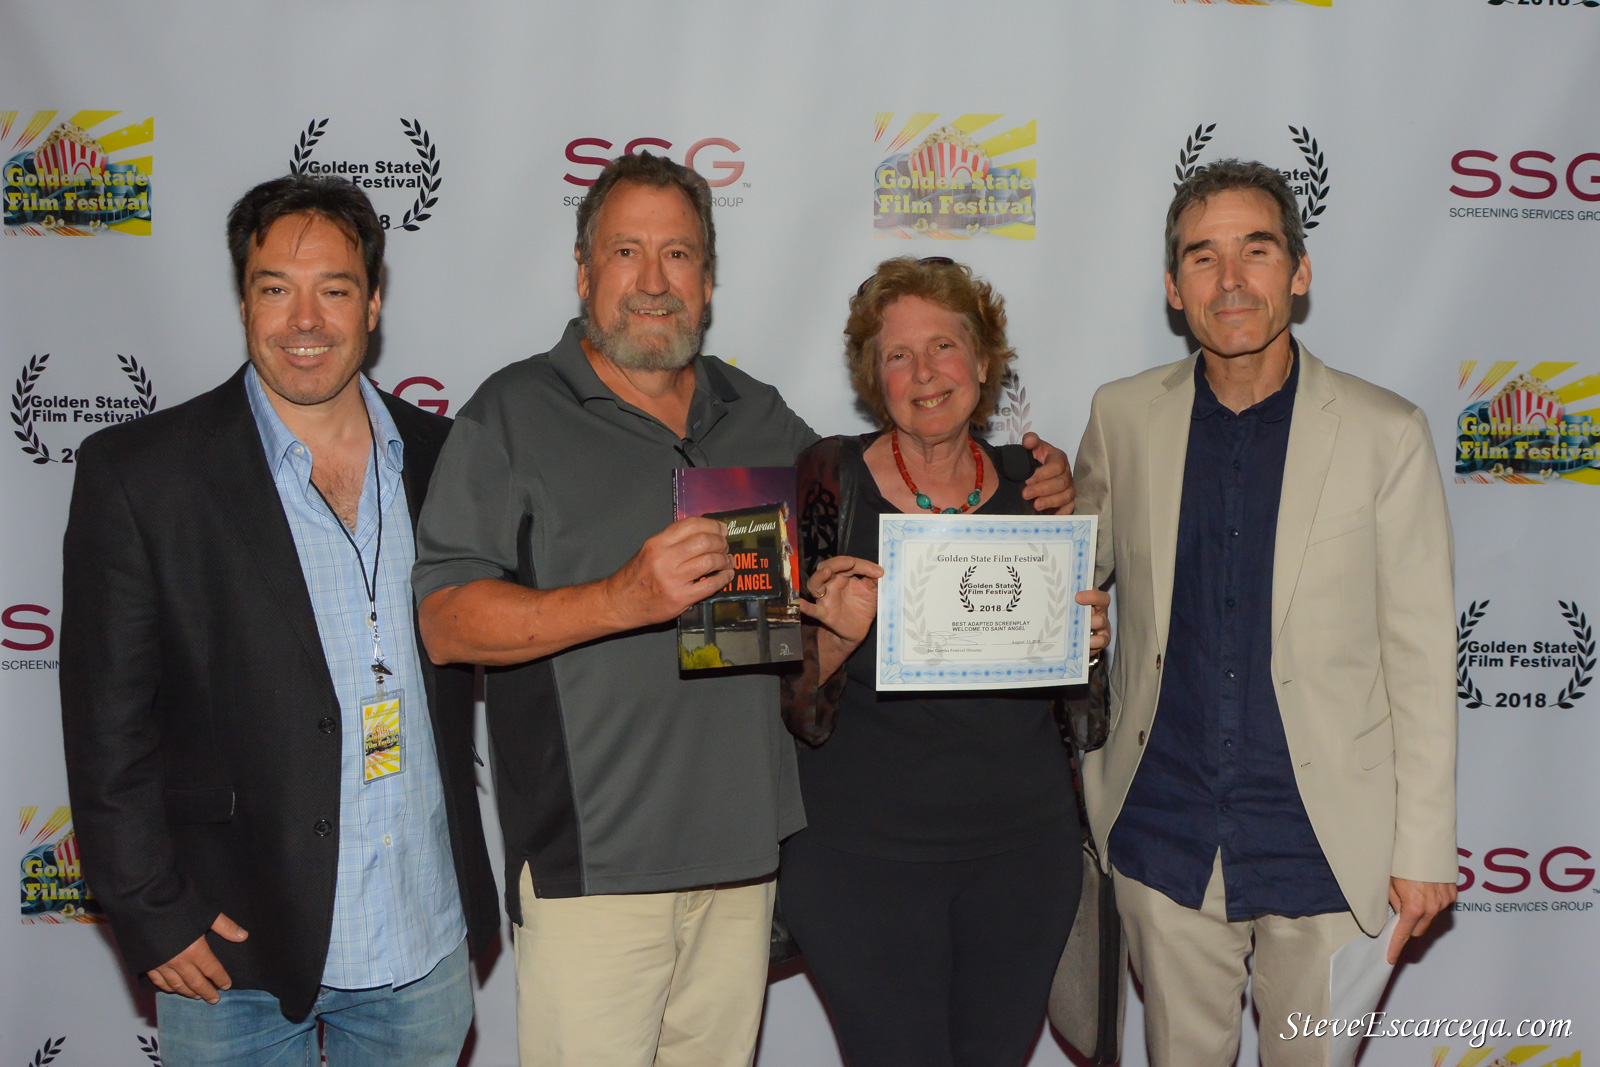 Golden State Film Festival - Receiving award